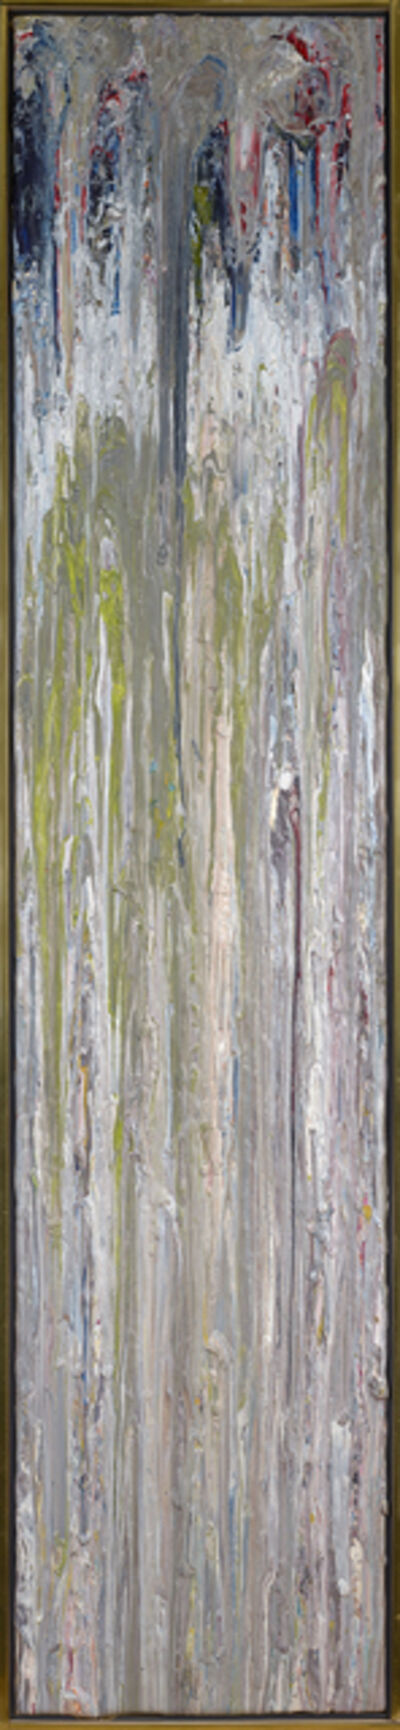 Larry Poons, 'Untitled [C-3]', 1980